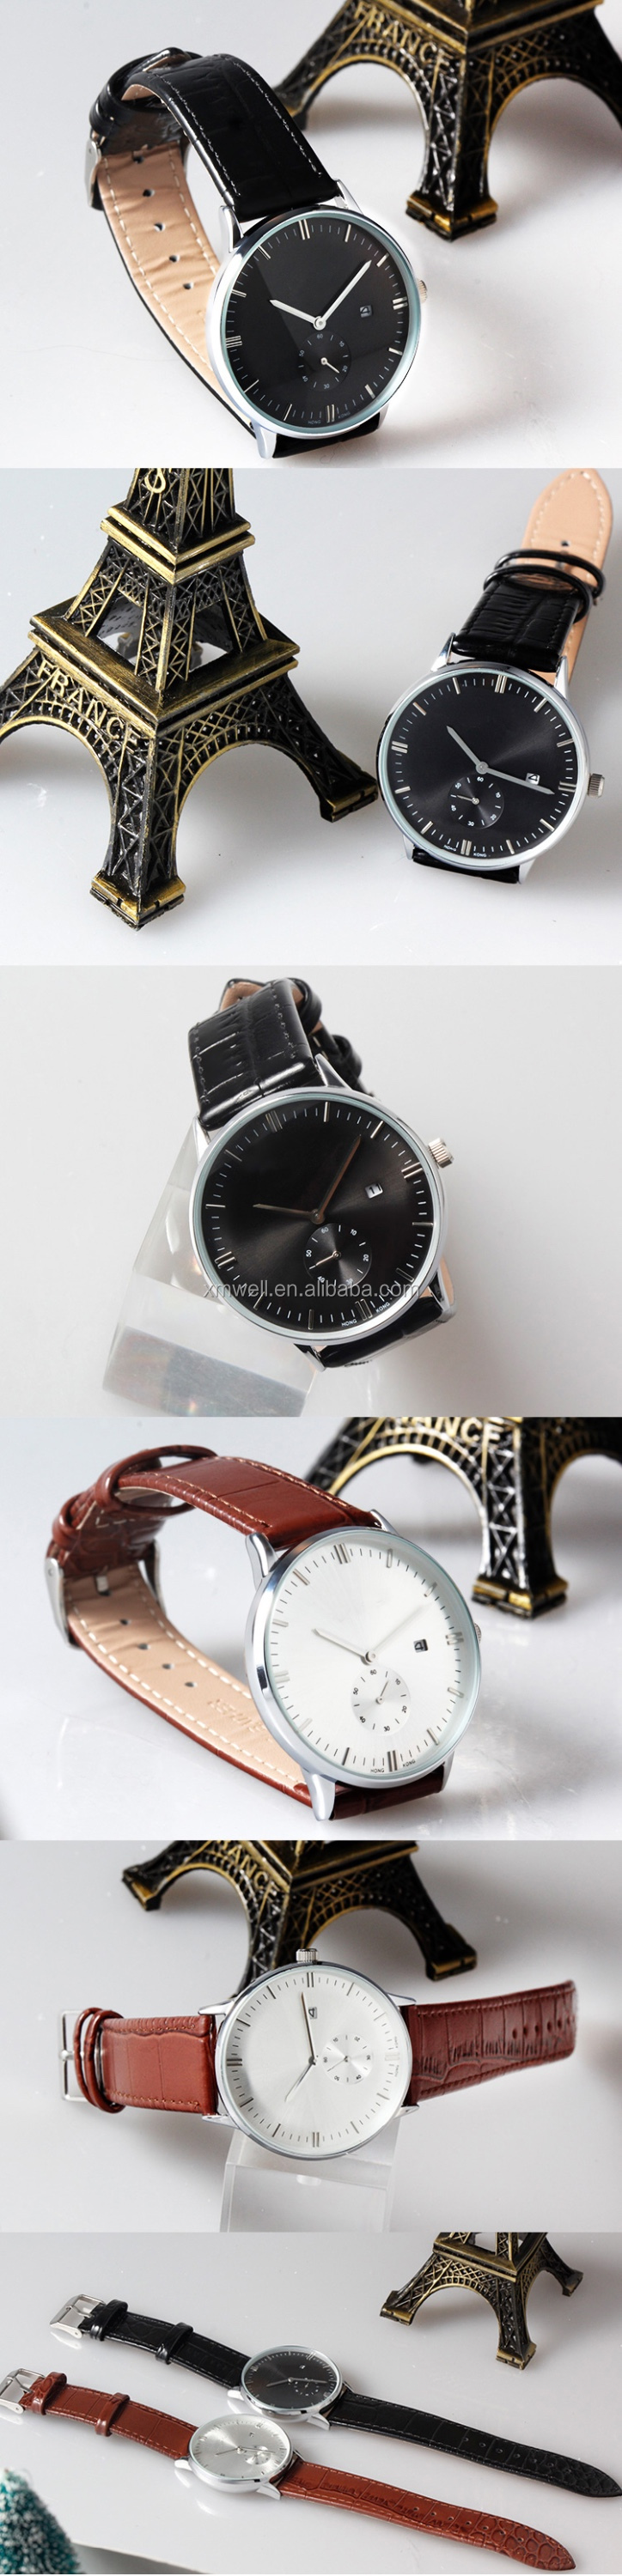 2017 high quality simple design business men's wrist watch